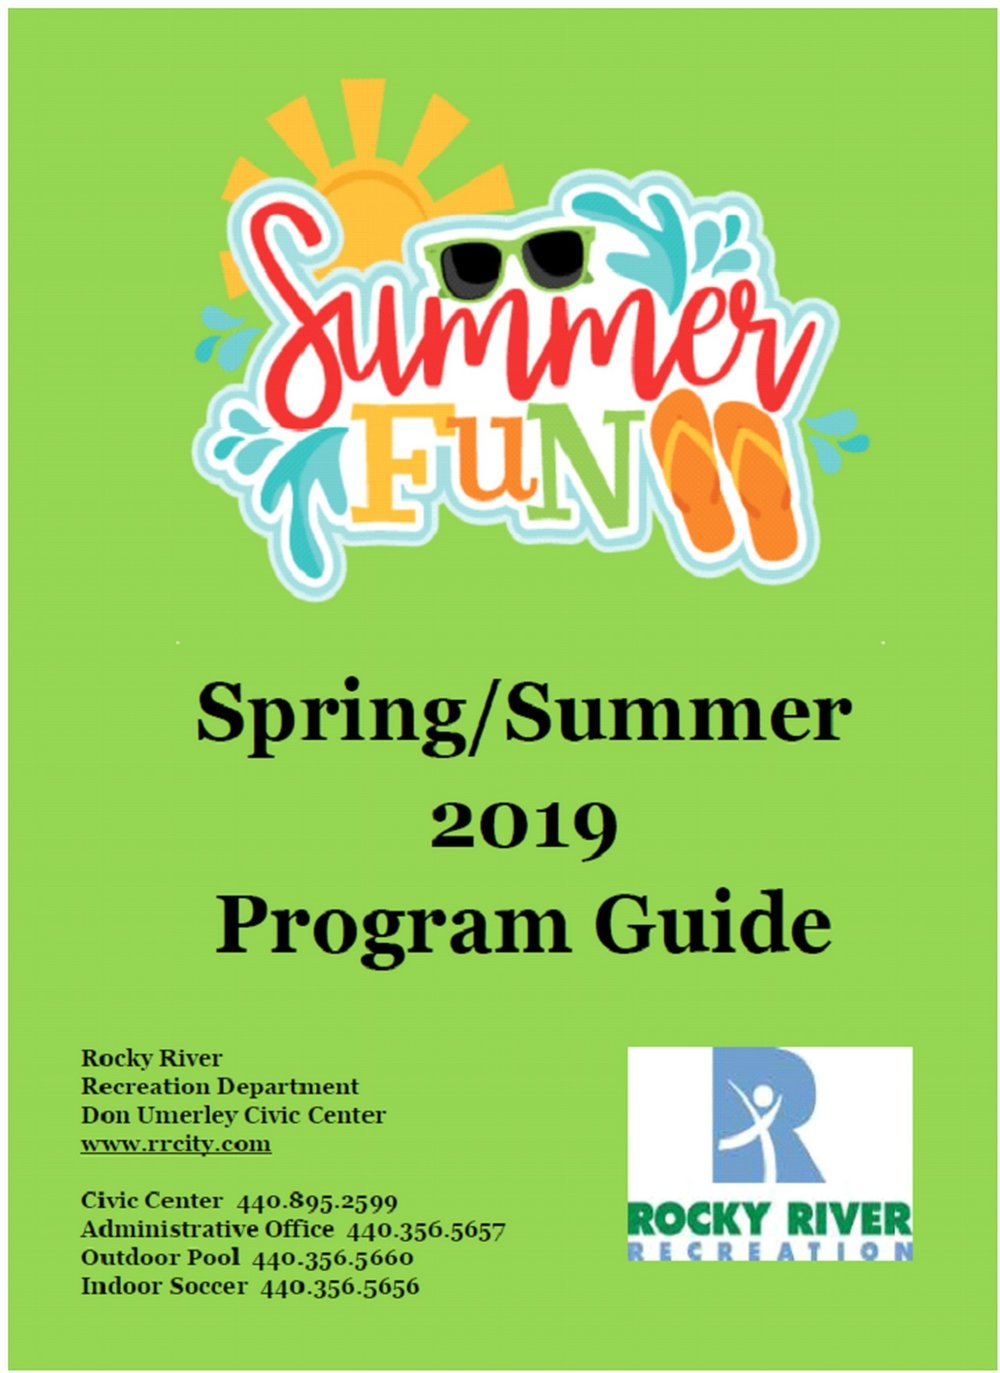 Recreation Department Spring/Summer 2019 Program Guide